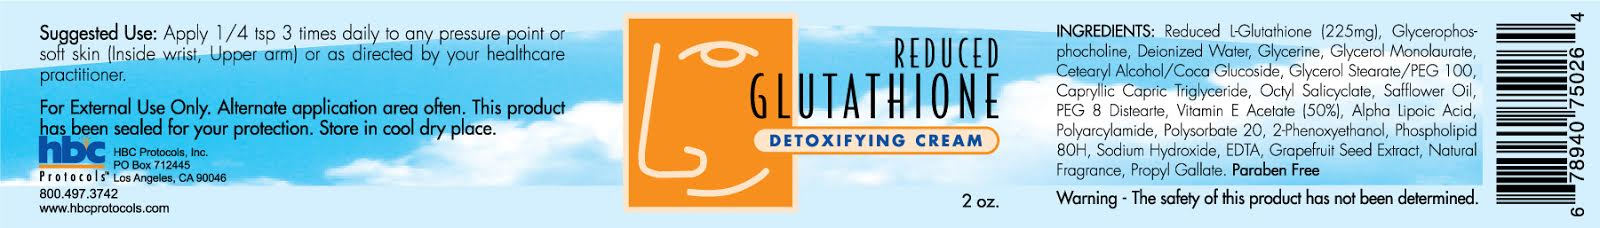 Reduced Glutathione Transdermal Cream